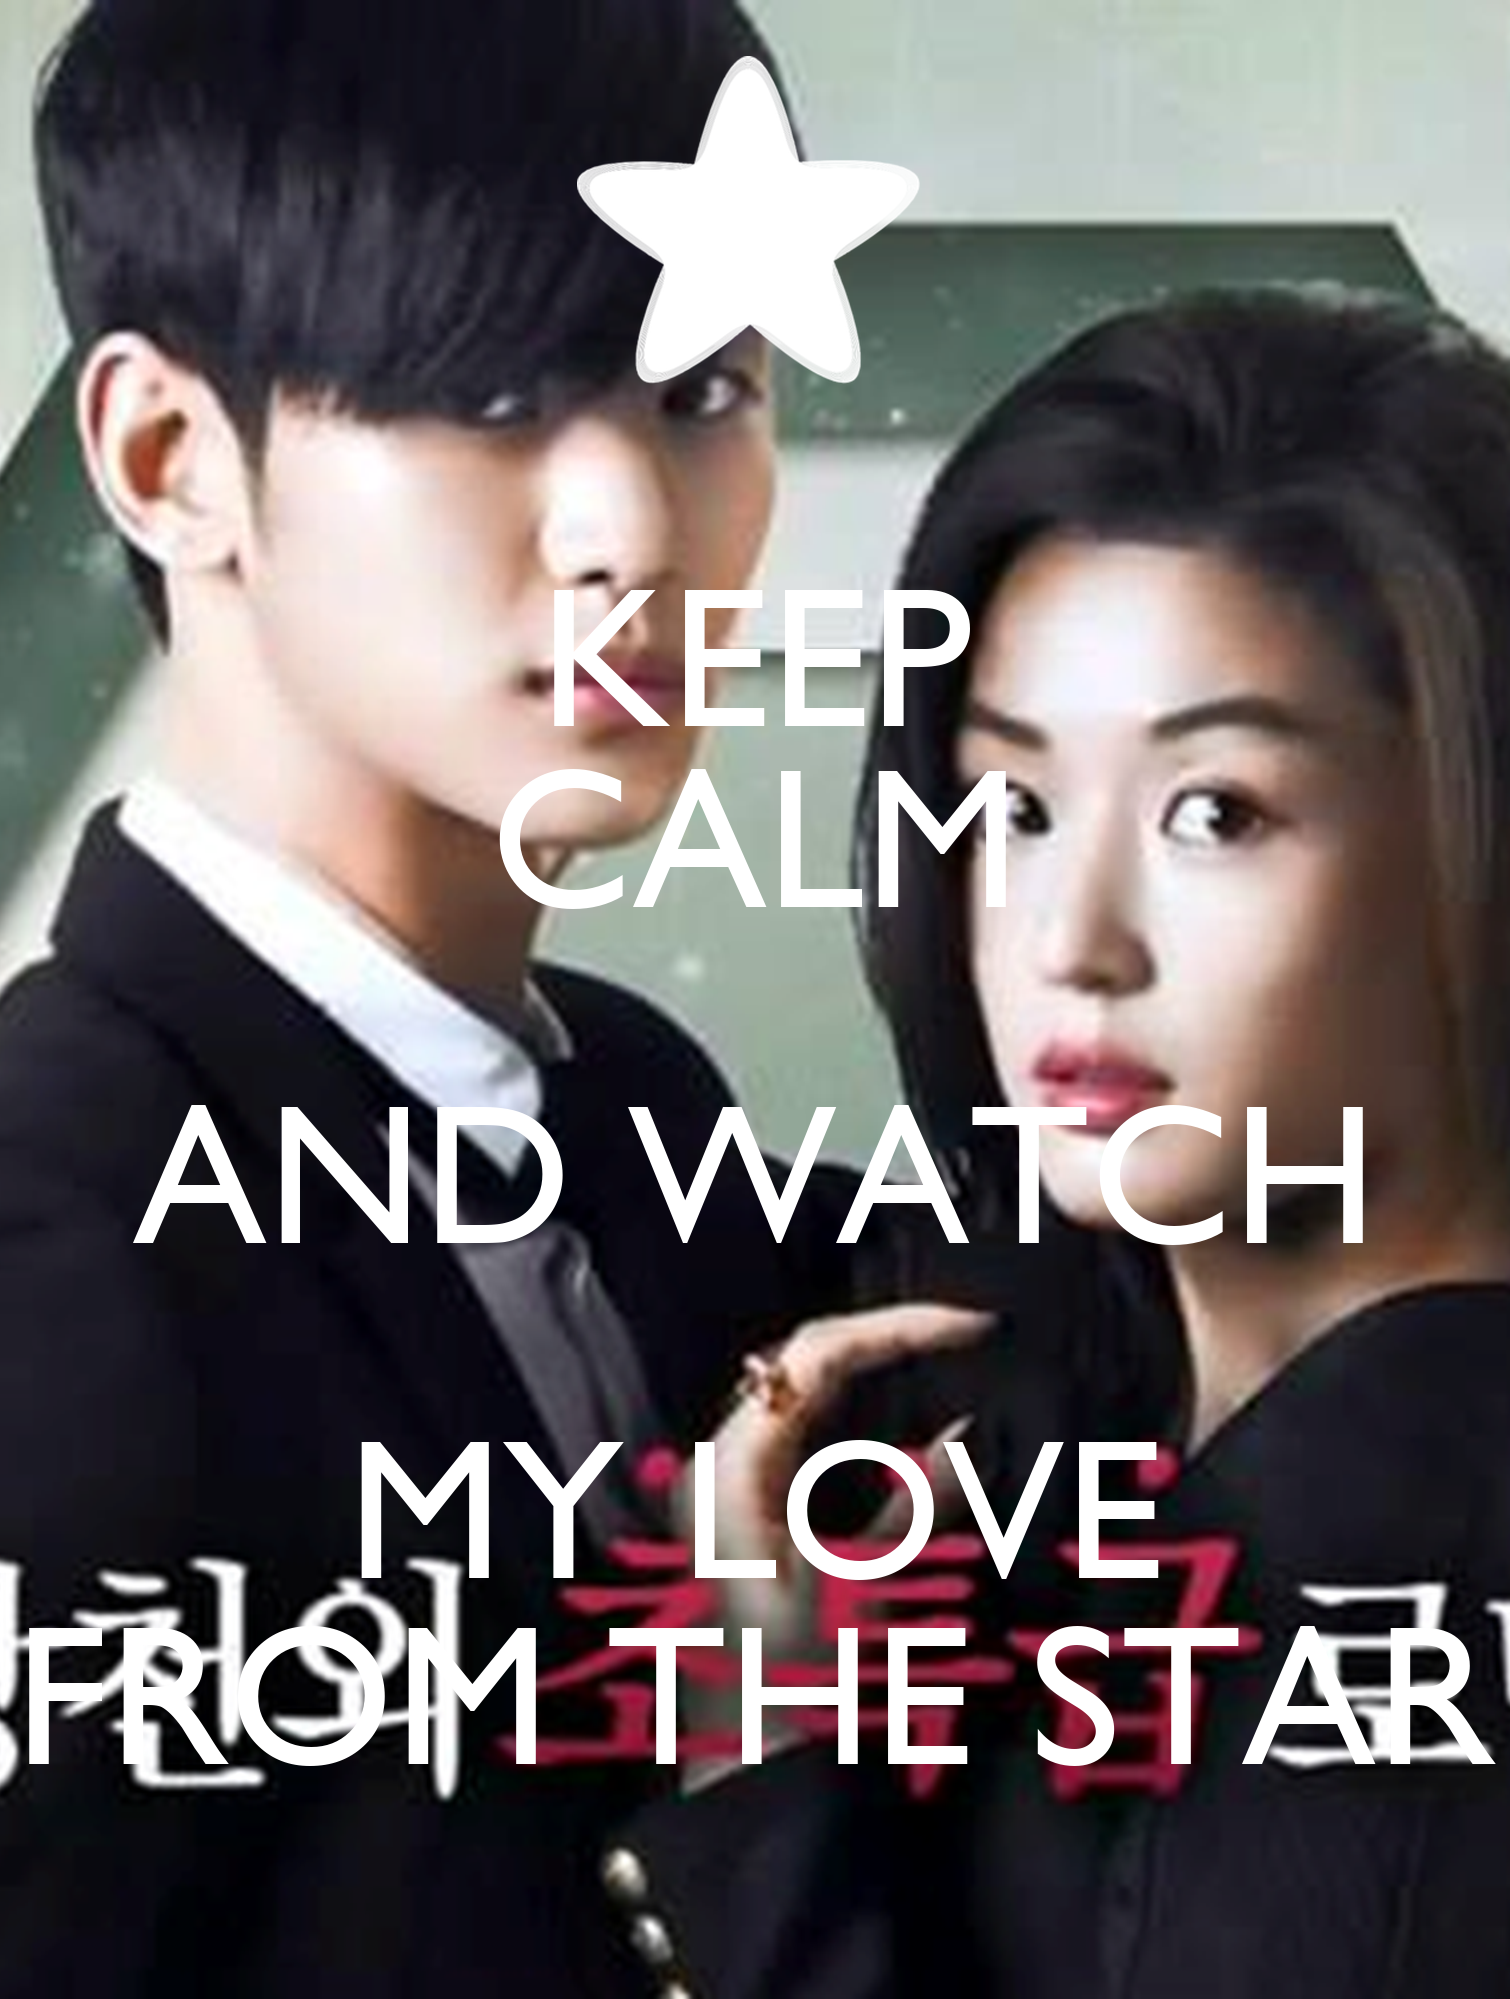 Wall Stickers Childrens Keep Calm And Watch My Love From The Star Keep Calm And